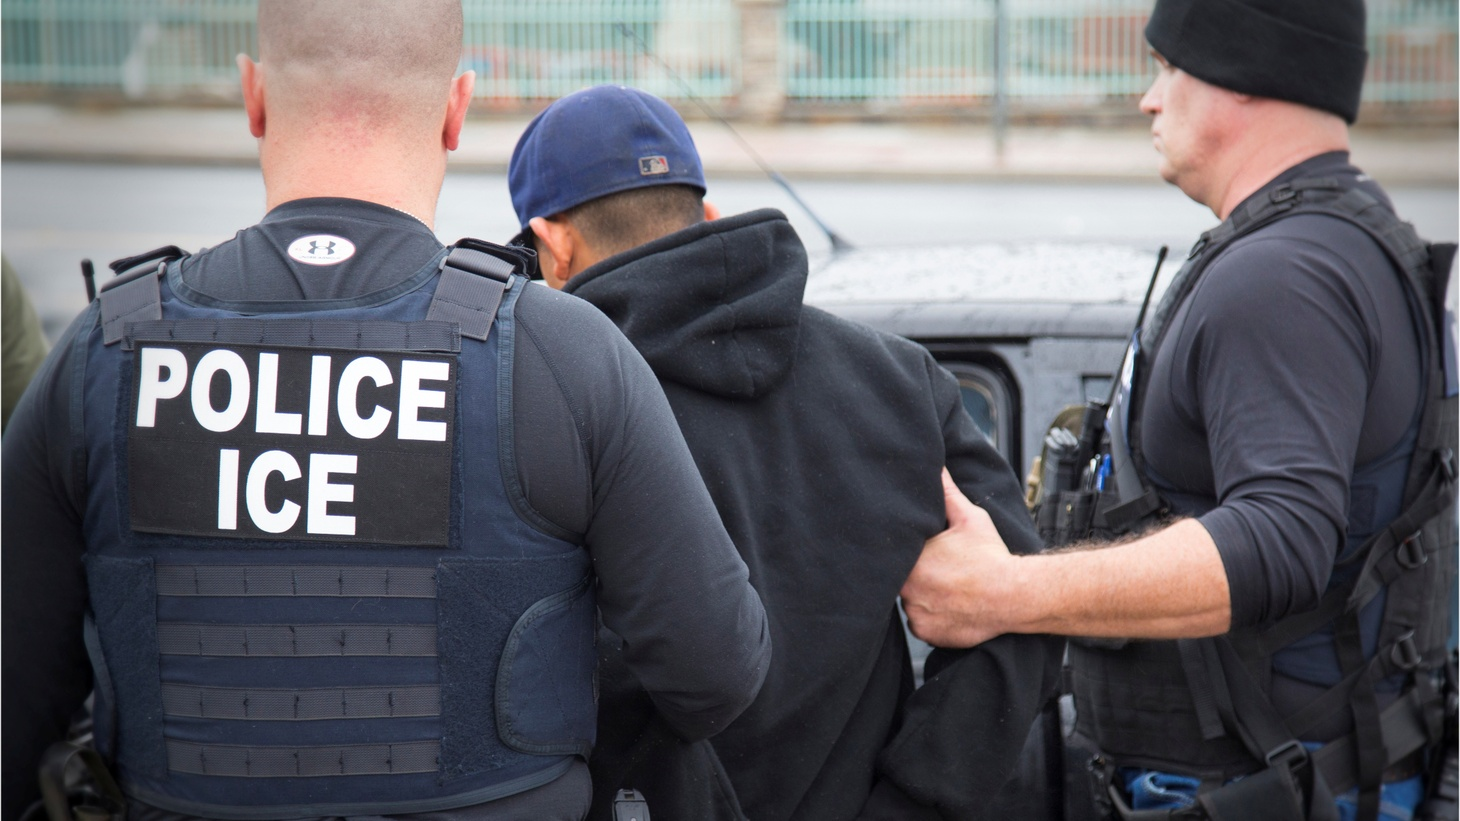 New memos from the Department of Homeland Security outline the enforcement priorities to address undocumented immigrants crossing the border. They broaden the category of people who are eligible for deportation to practically anyone who doesn't have papers.